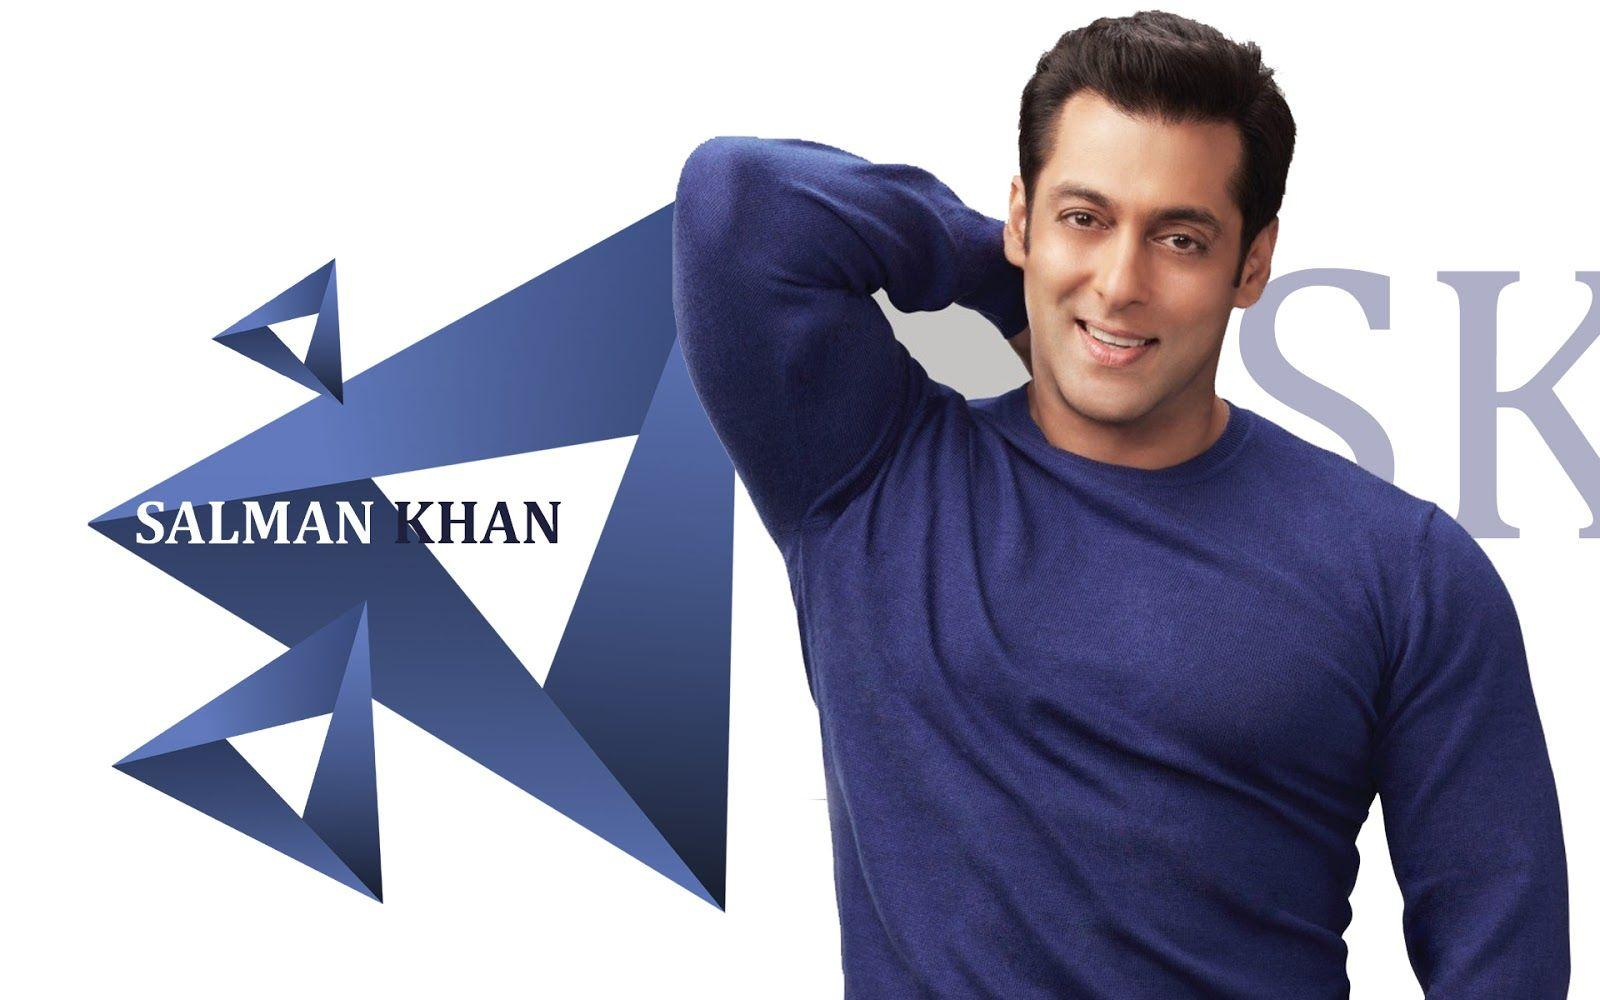 Salman Khan Wallpapers 8324